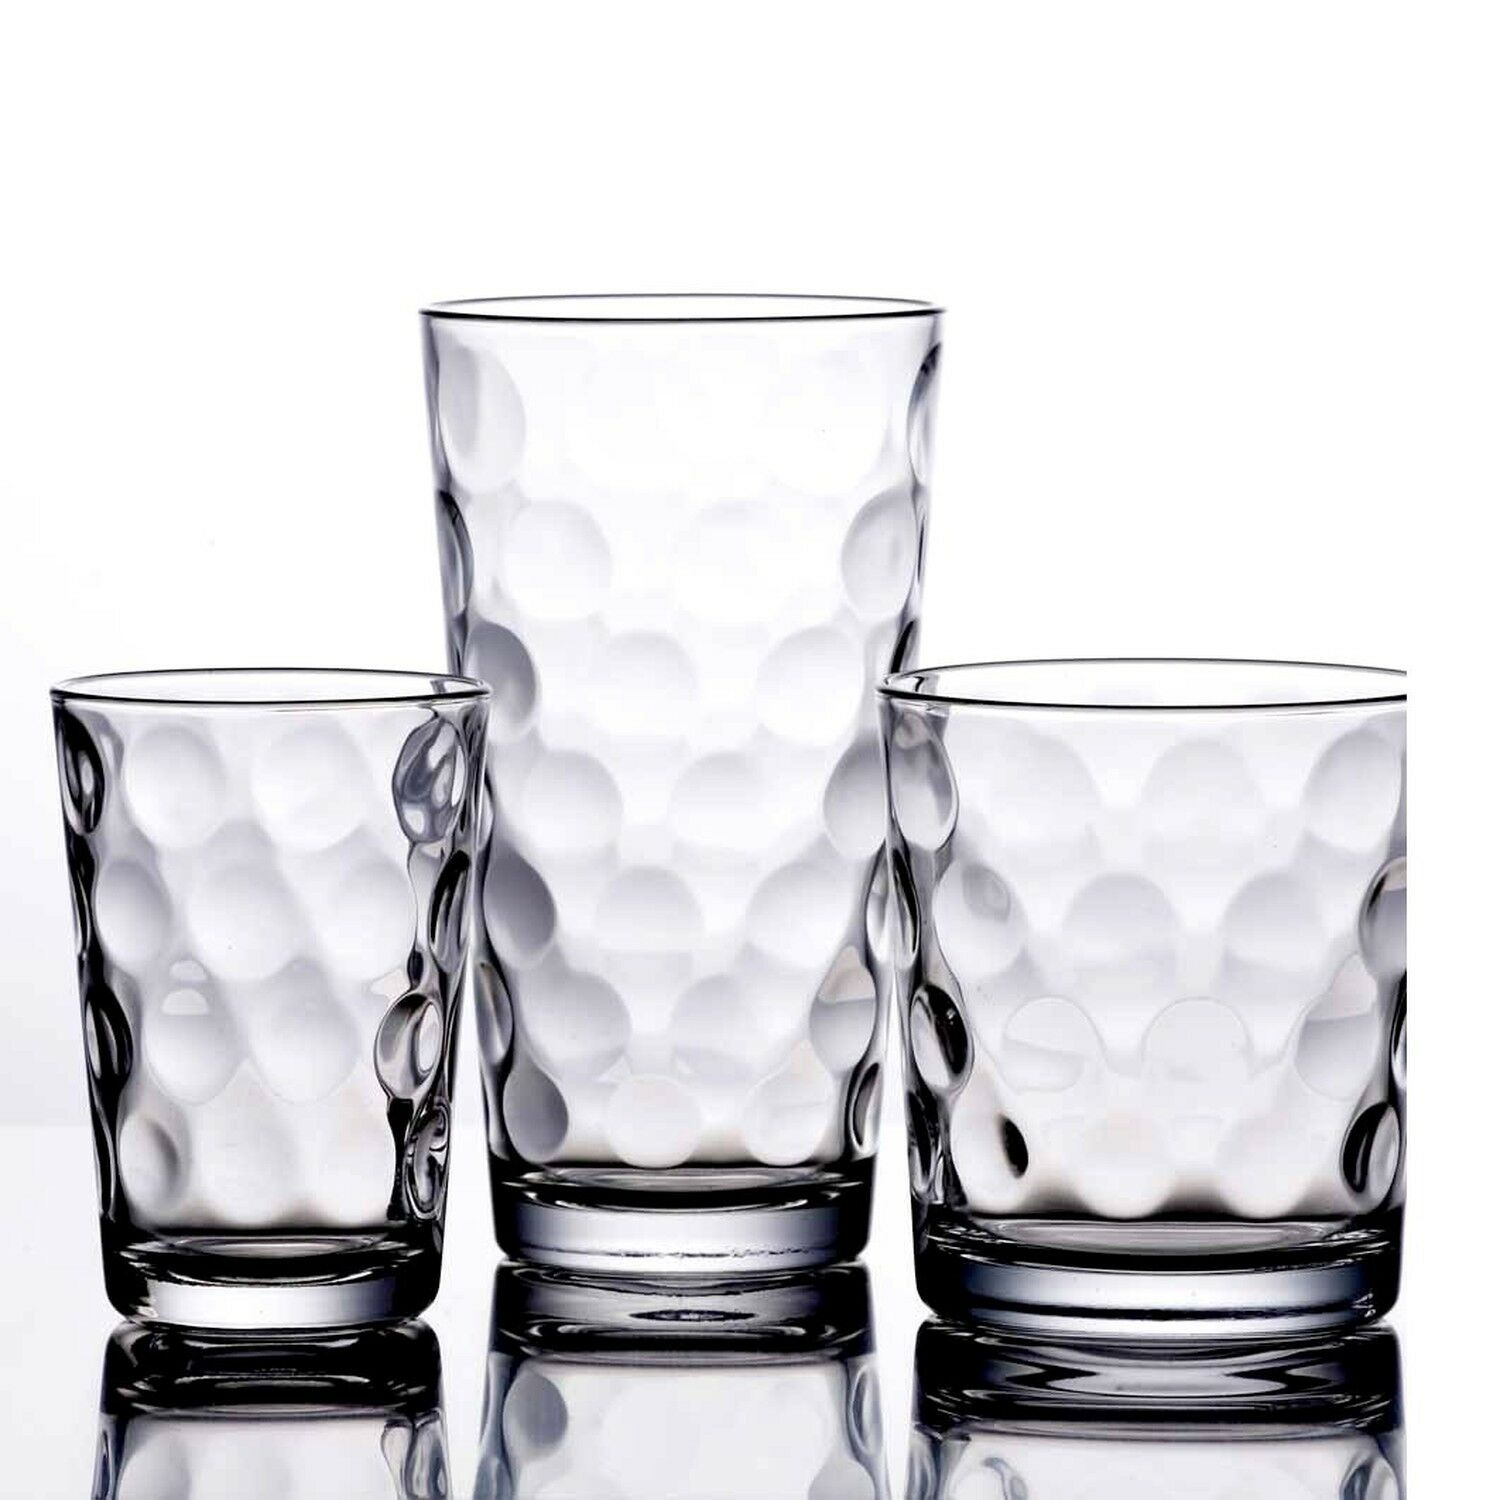 Drinking Glasses Kitchen Glassware Mix Set Of 12 Clear Glass Water Juice Cups For Sale Online Ebay